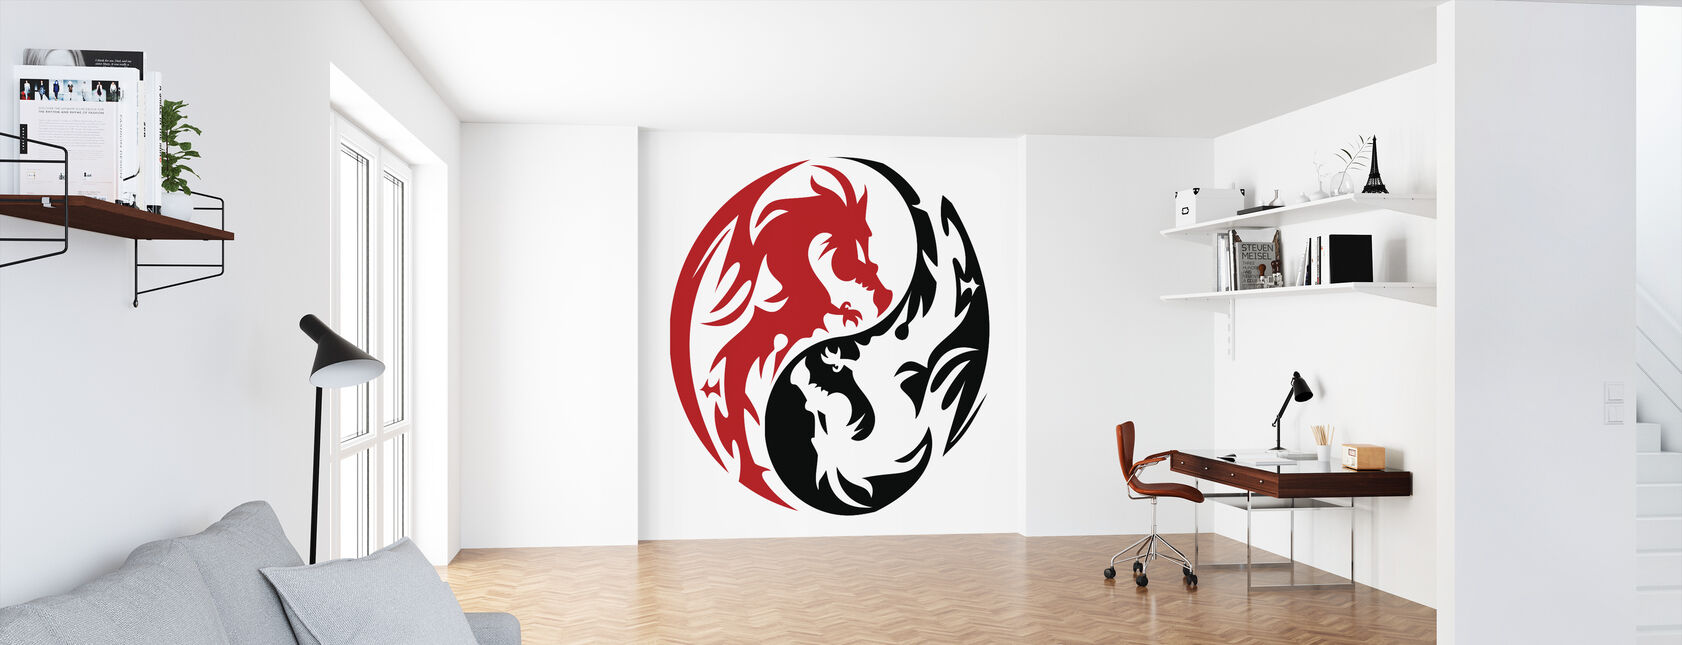 Circle Dragons - Red - Wallpaper - Office